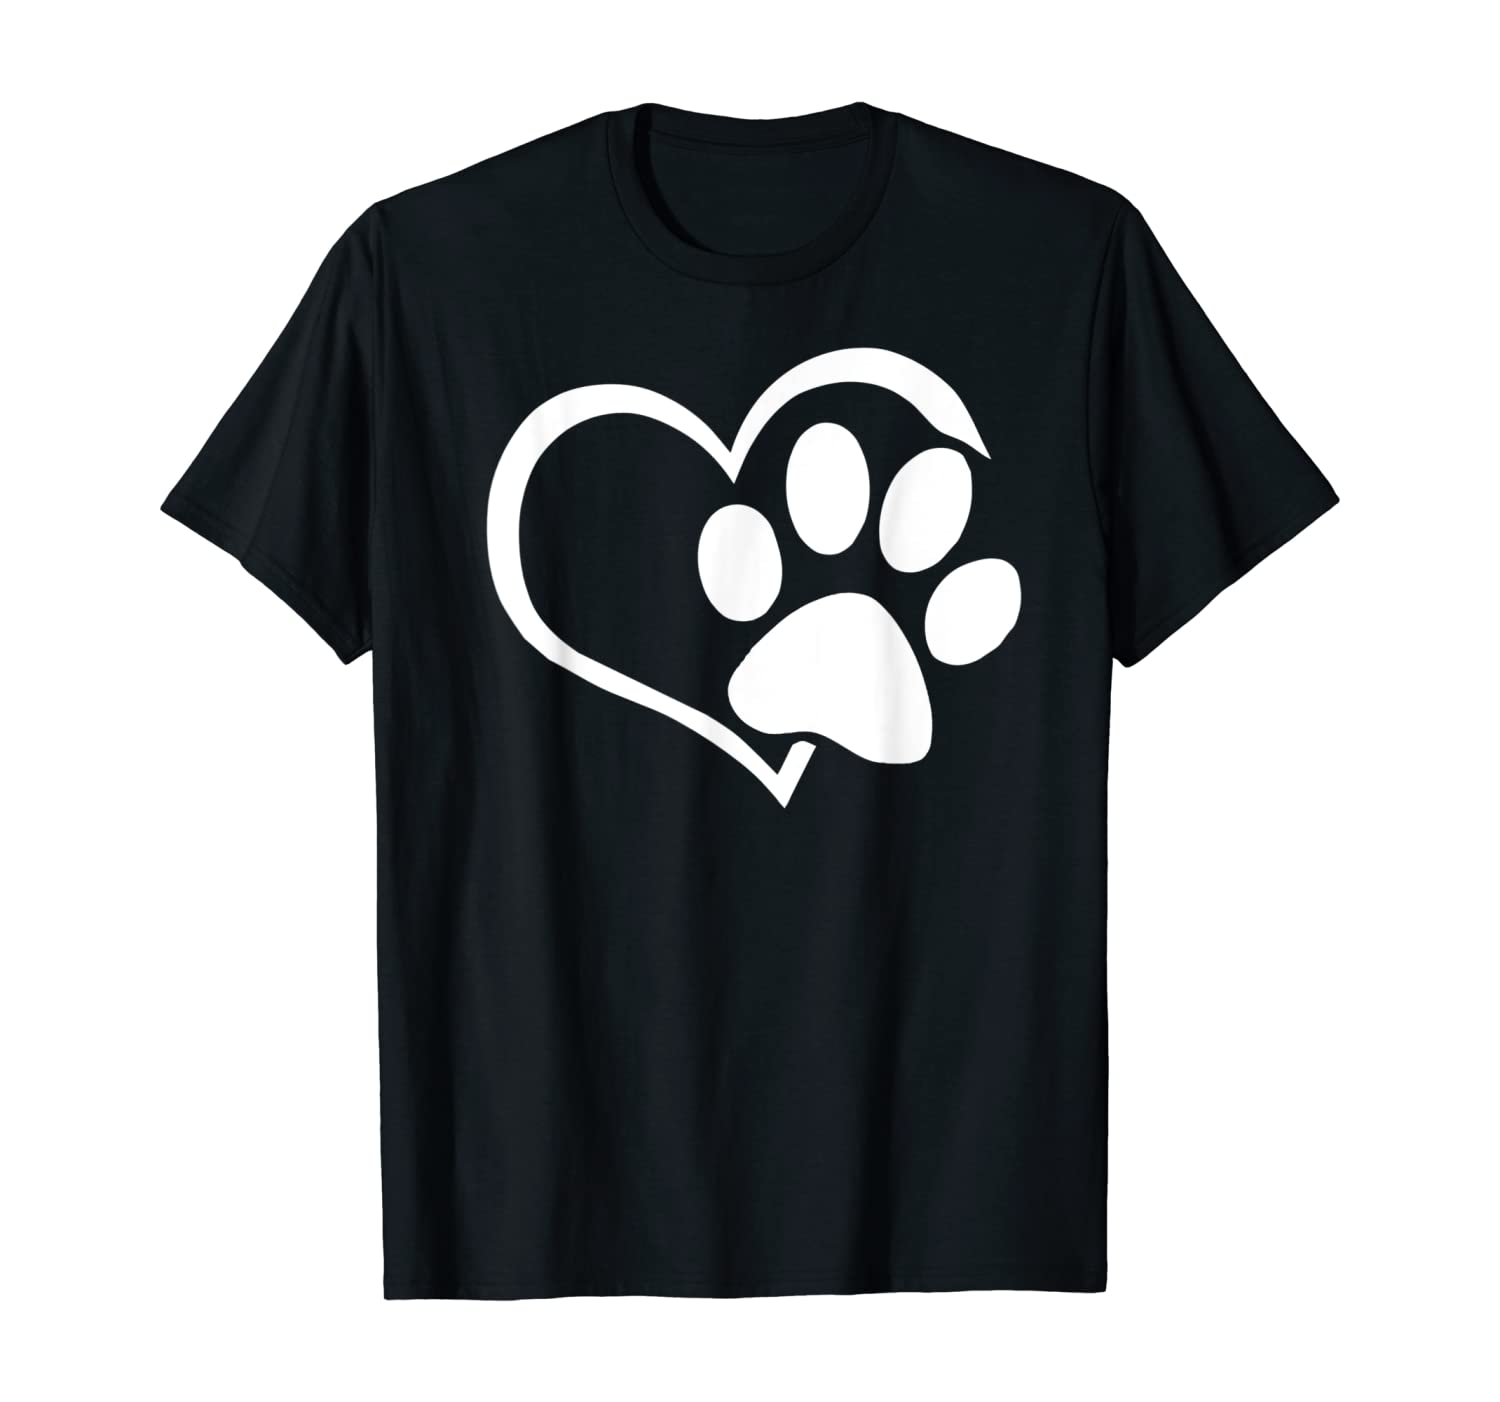 Dog Dad Mom Puppy Shirt Love Dogs Paw Print Heart Women Men T-Shirt